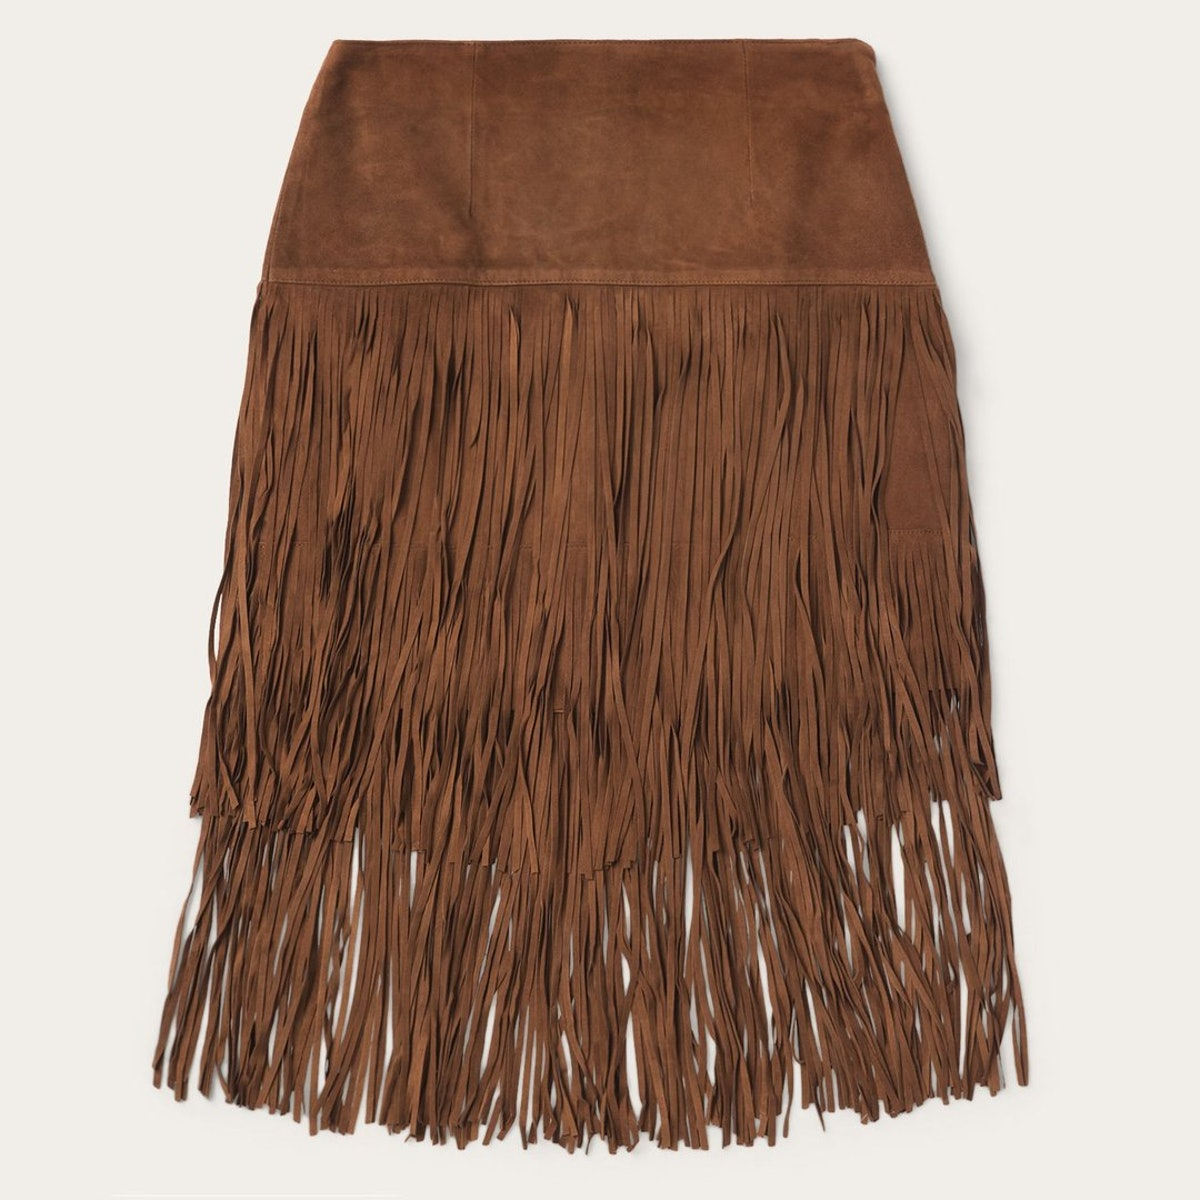 Stetson Suede Fringed Skirt